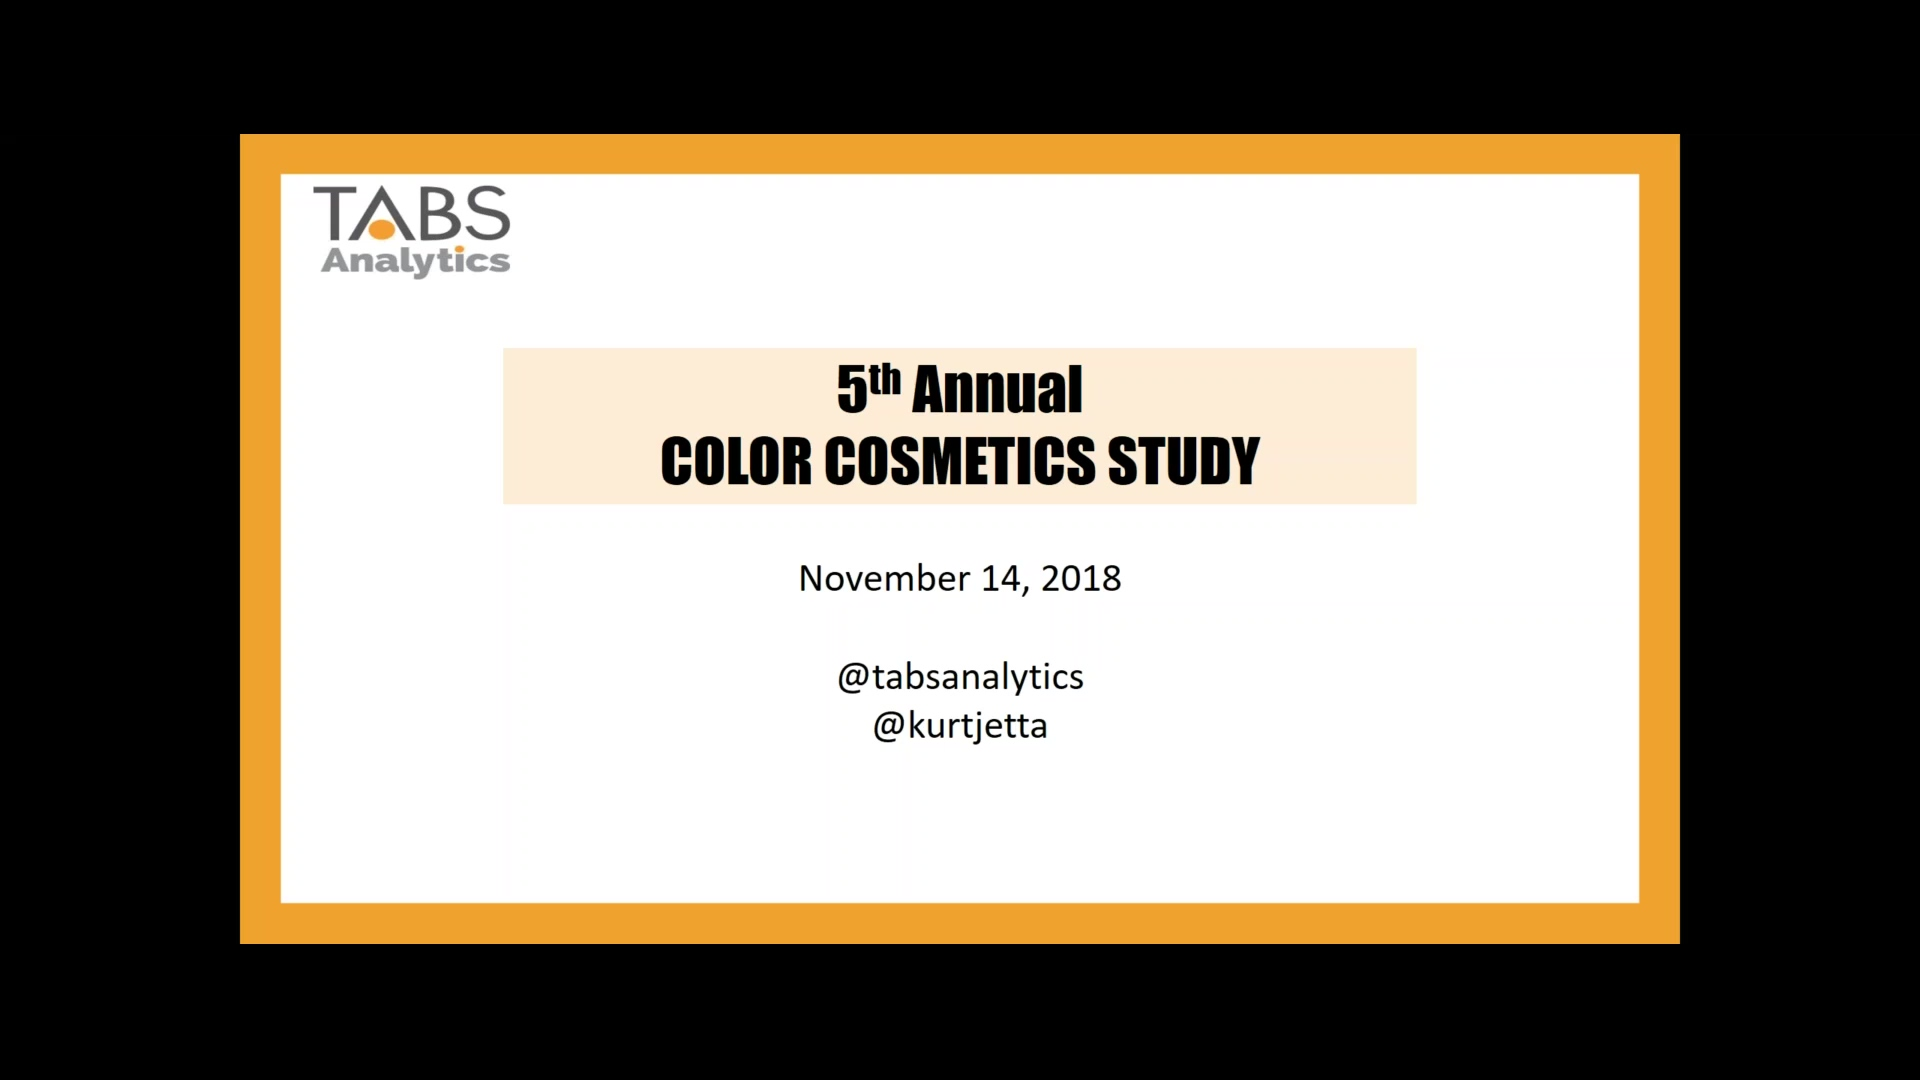 TABS 5th Annual Color Cosmetics Study (11_14_2018)